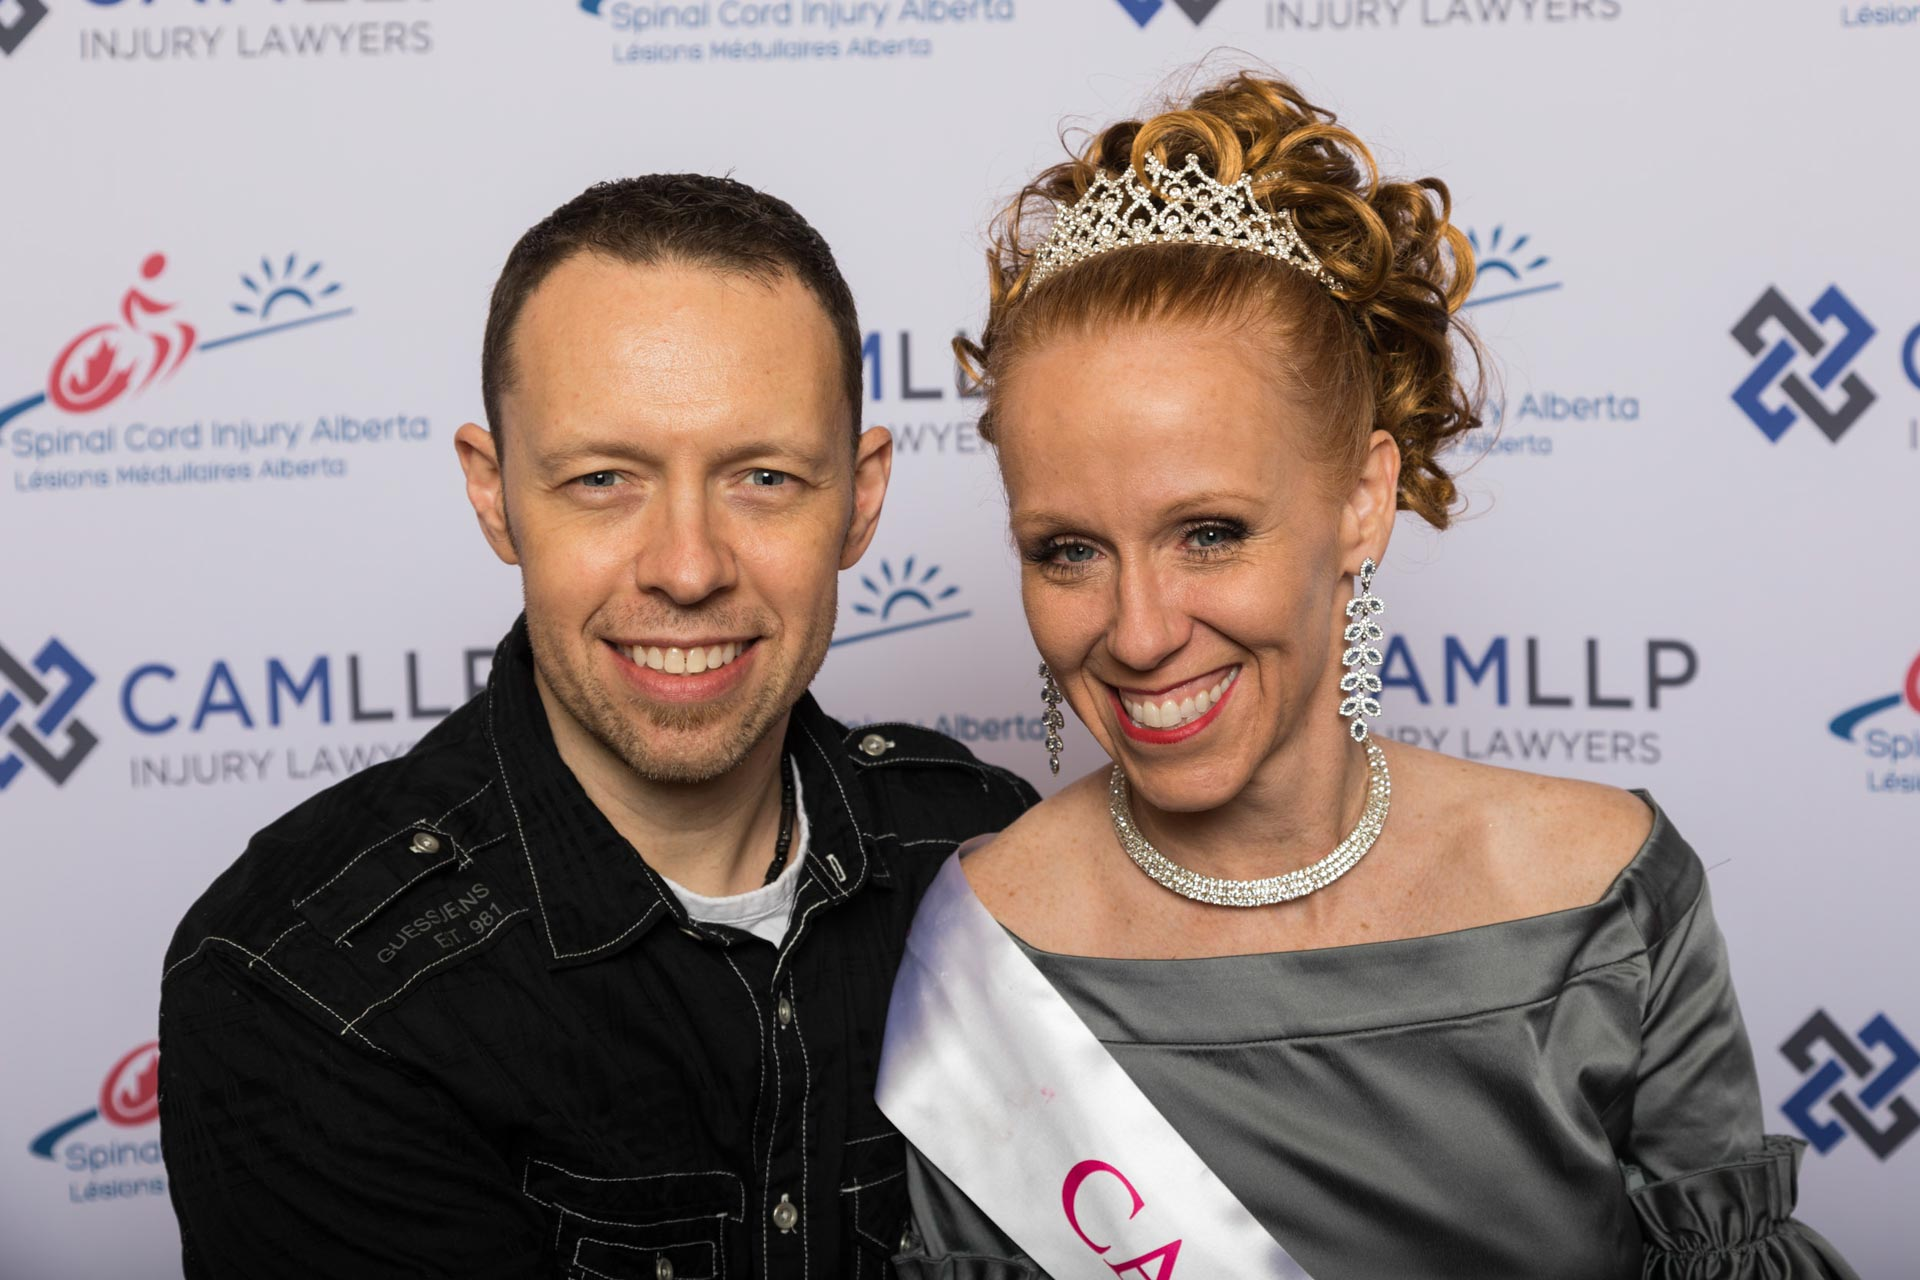 Vahen and her husband pose in front a red carpet backdrop at the Miss Wheelchair Canada awards. Vahen wheres a teirah and smlies at the camera.